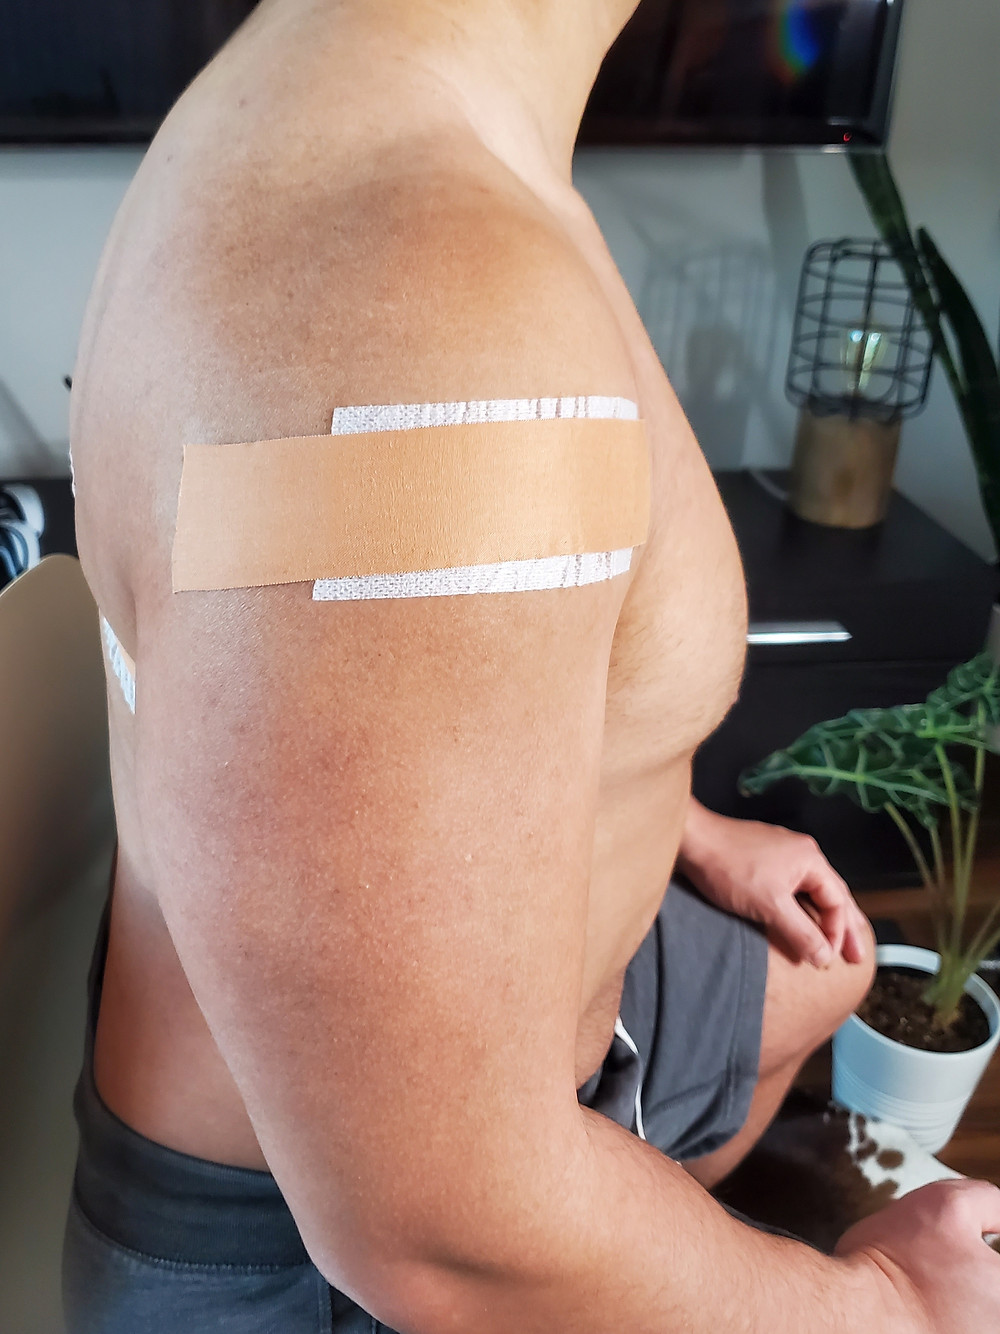 Leuko tape to support the shoulder like a sling